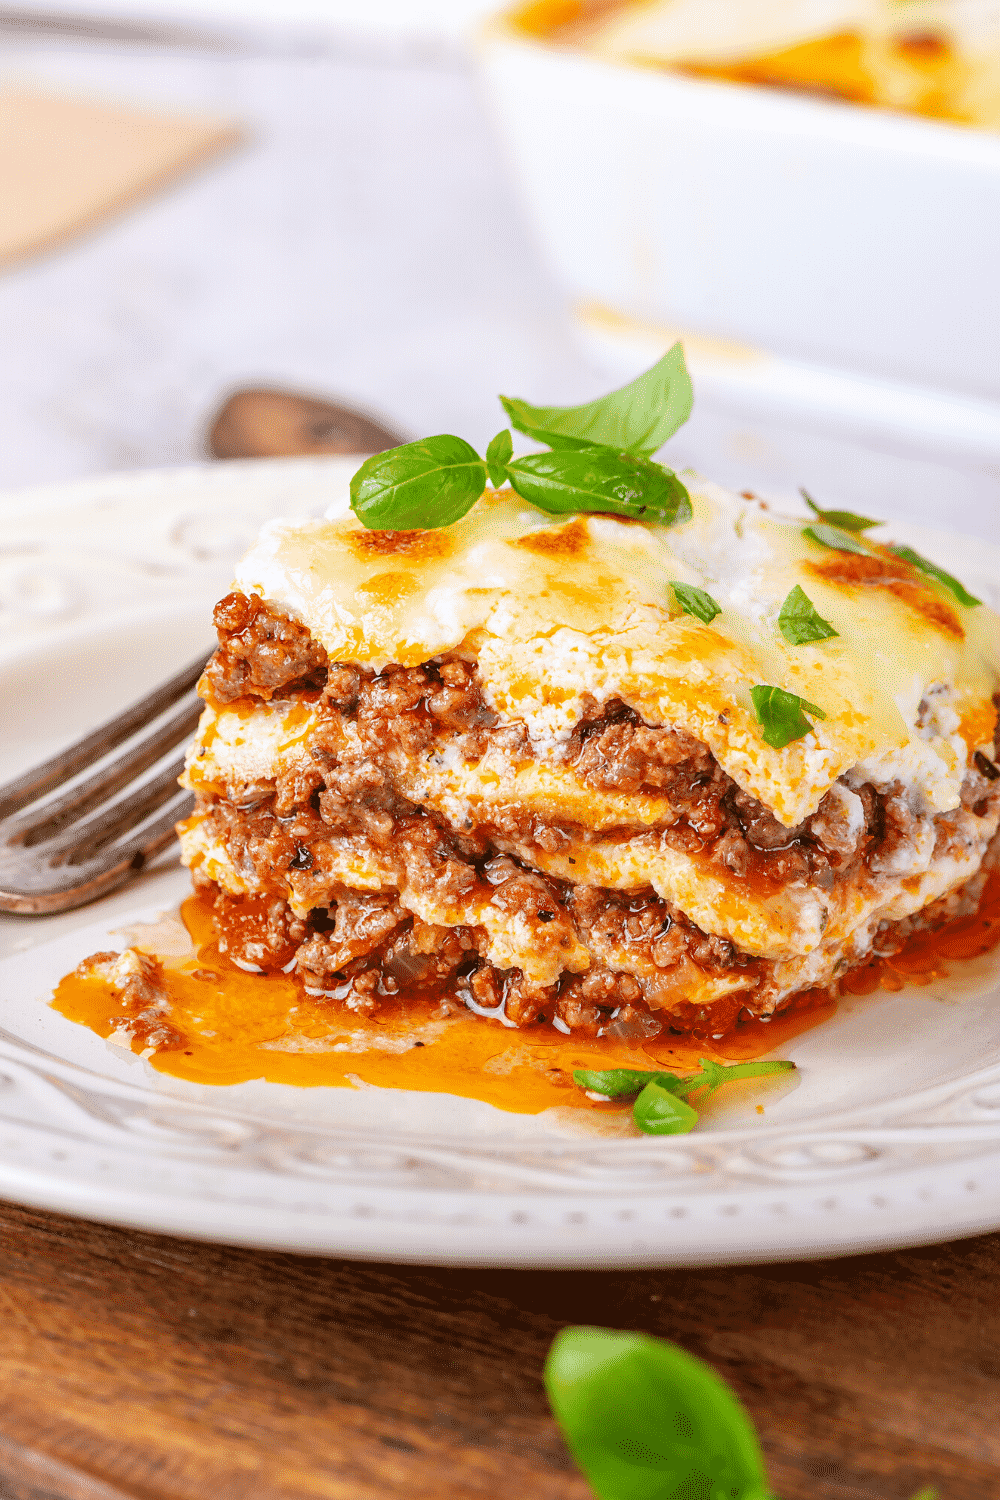 A piece of lasagna on a white plate. The white plate is on a wooden cutting board.